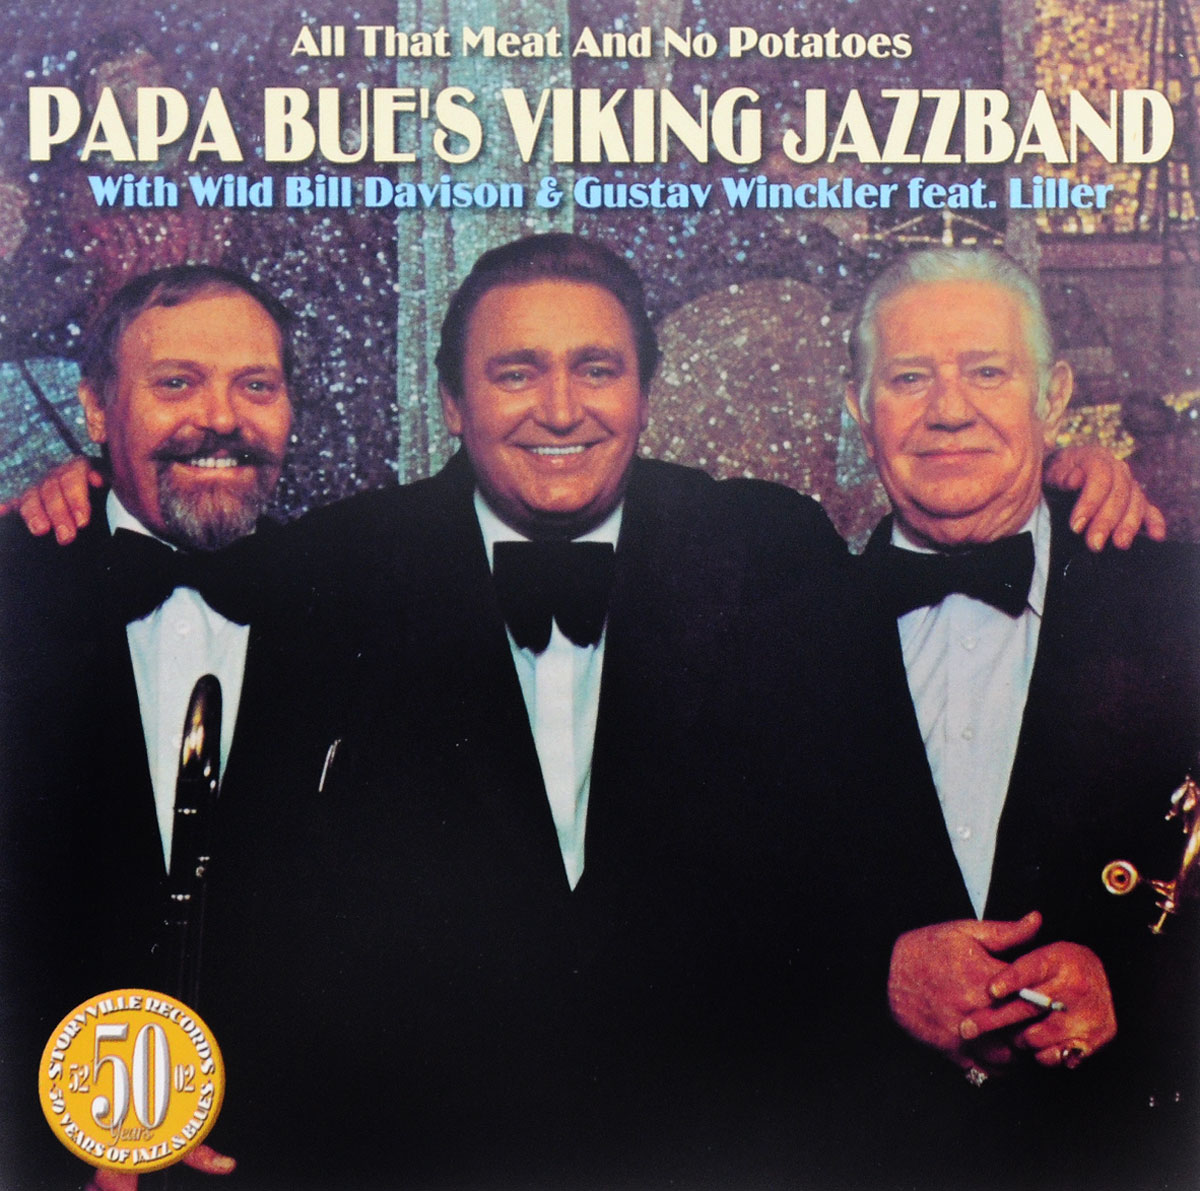 Papa Bue's Viking Jazz Band,Билл Дэвисон,Gustav Winckler,Liller Papa Bue's Viking Jazzband With Bill Davison & Gustav Winckler Feat. Liller. All The Meat And No Potatoes the gustav sonata